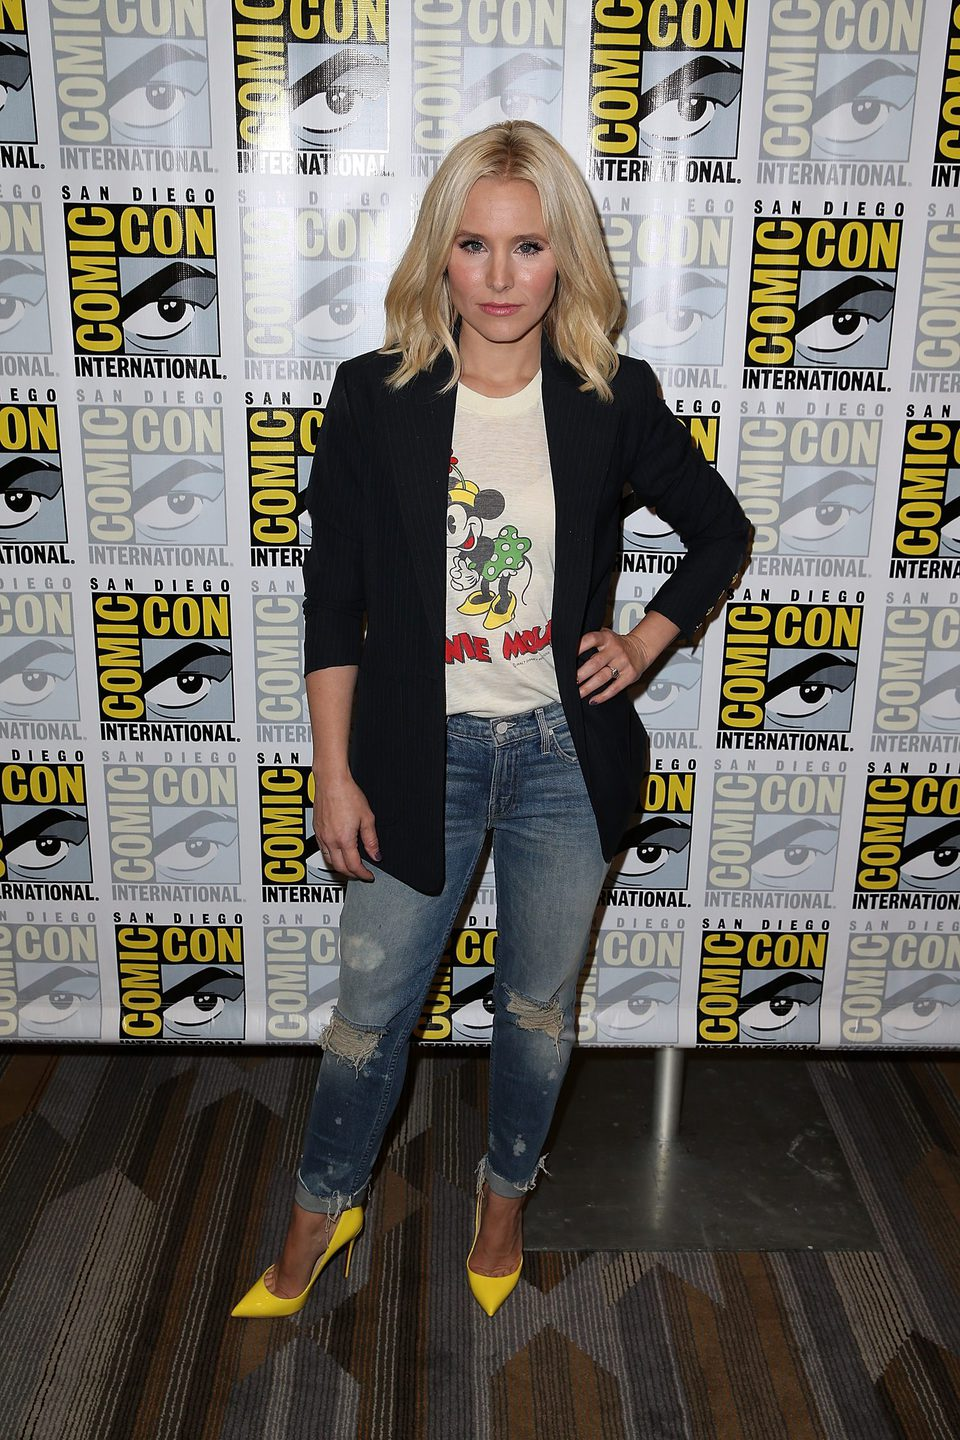 Kristen Bell attend the Comic-Con International 2016